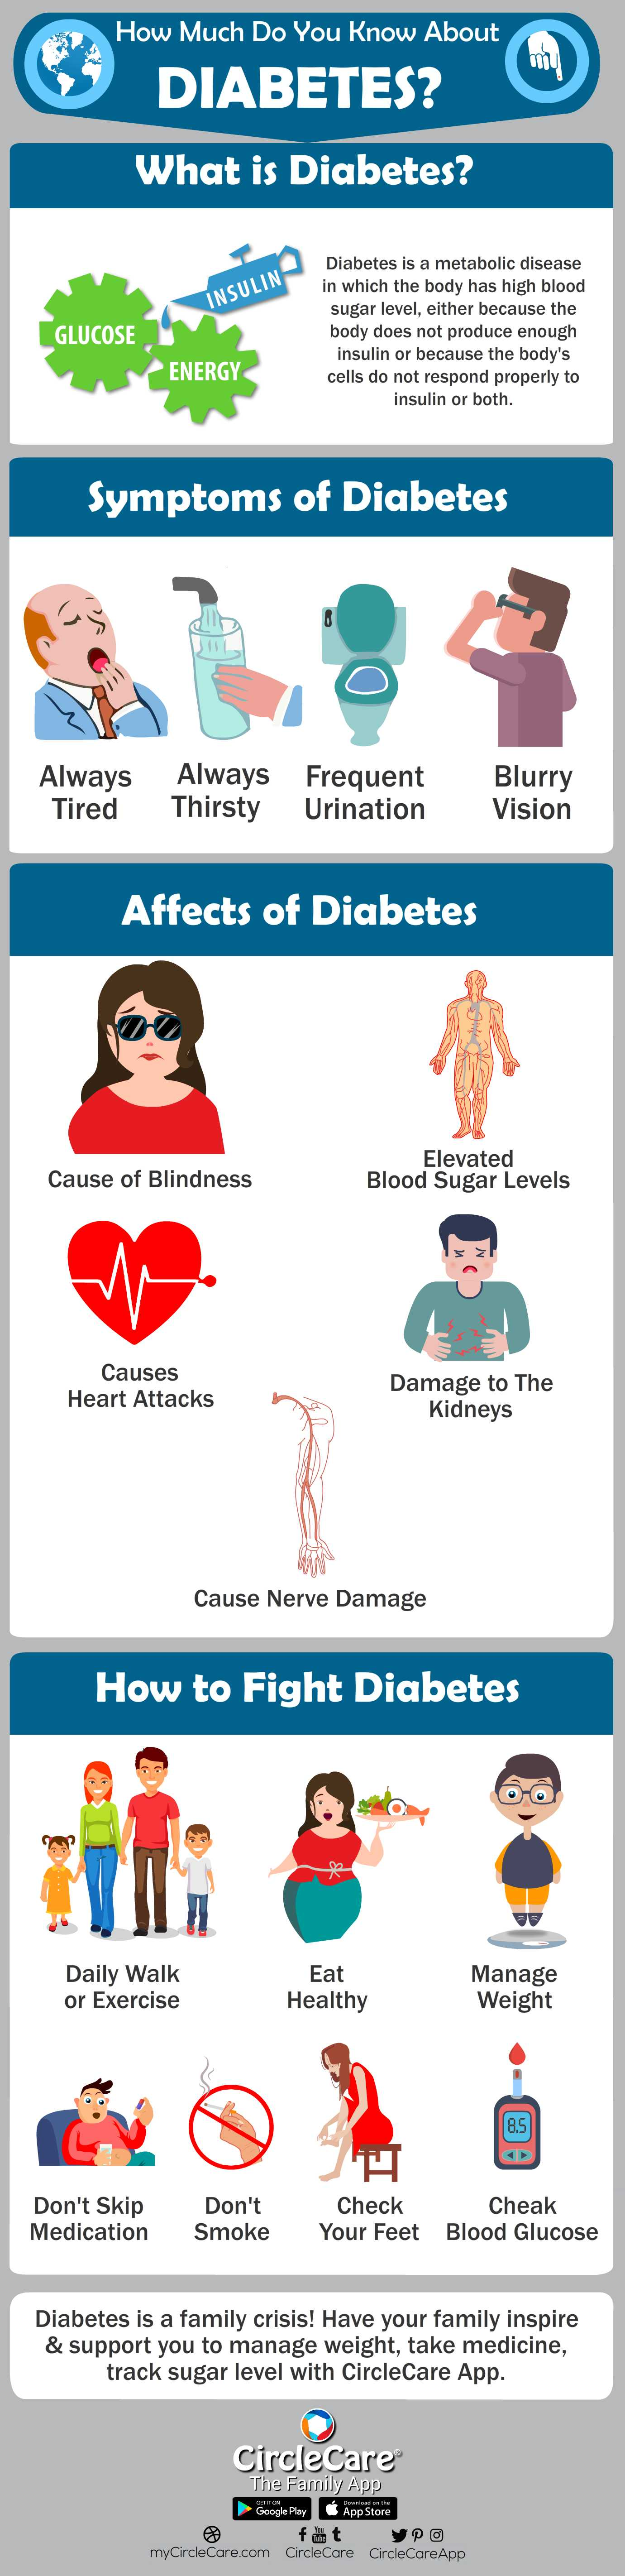 fight diabetes with circlecare app - how much do you know